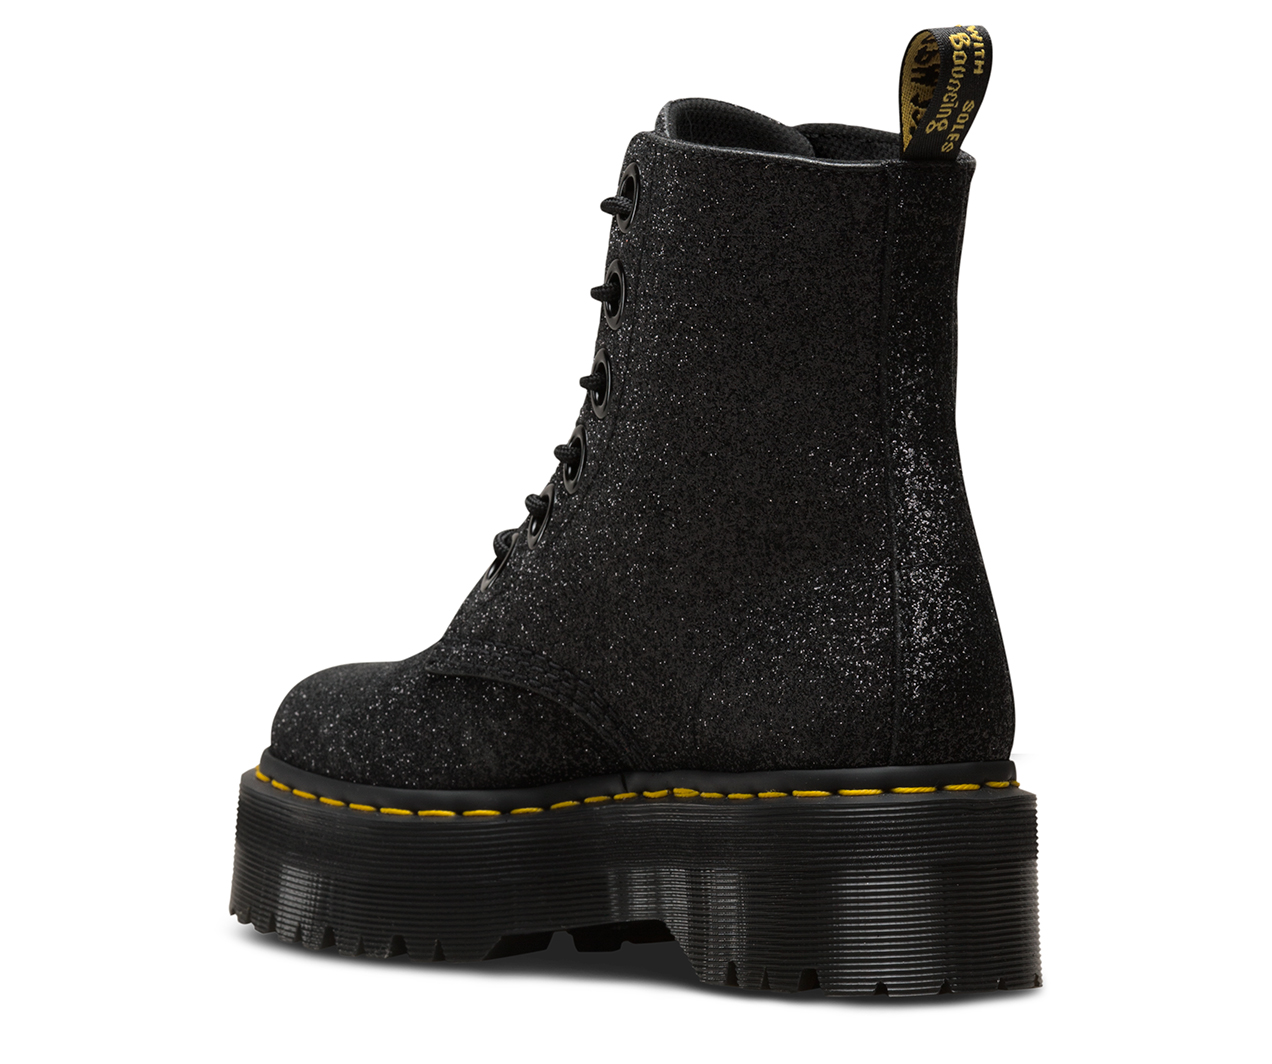 b45760201dd4 Molly Glitter | Womens Boots | Dr. Martens Official Site